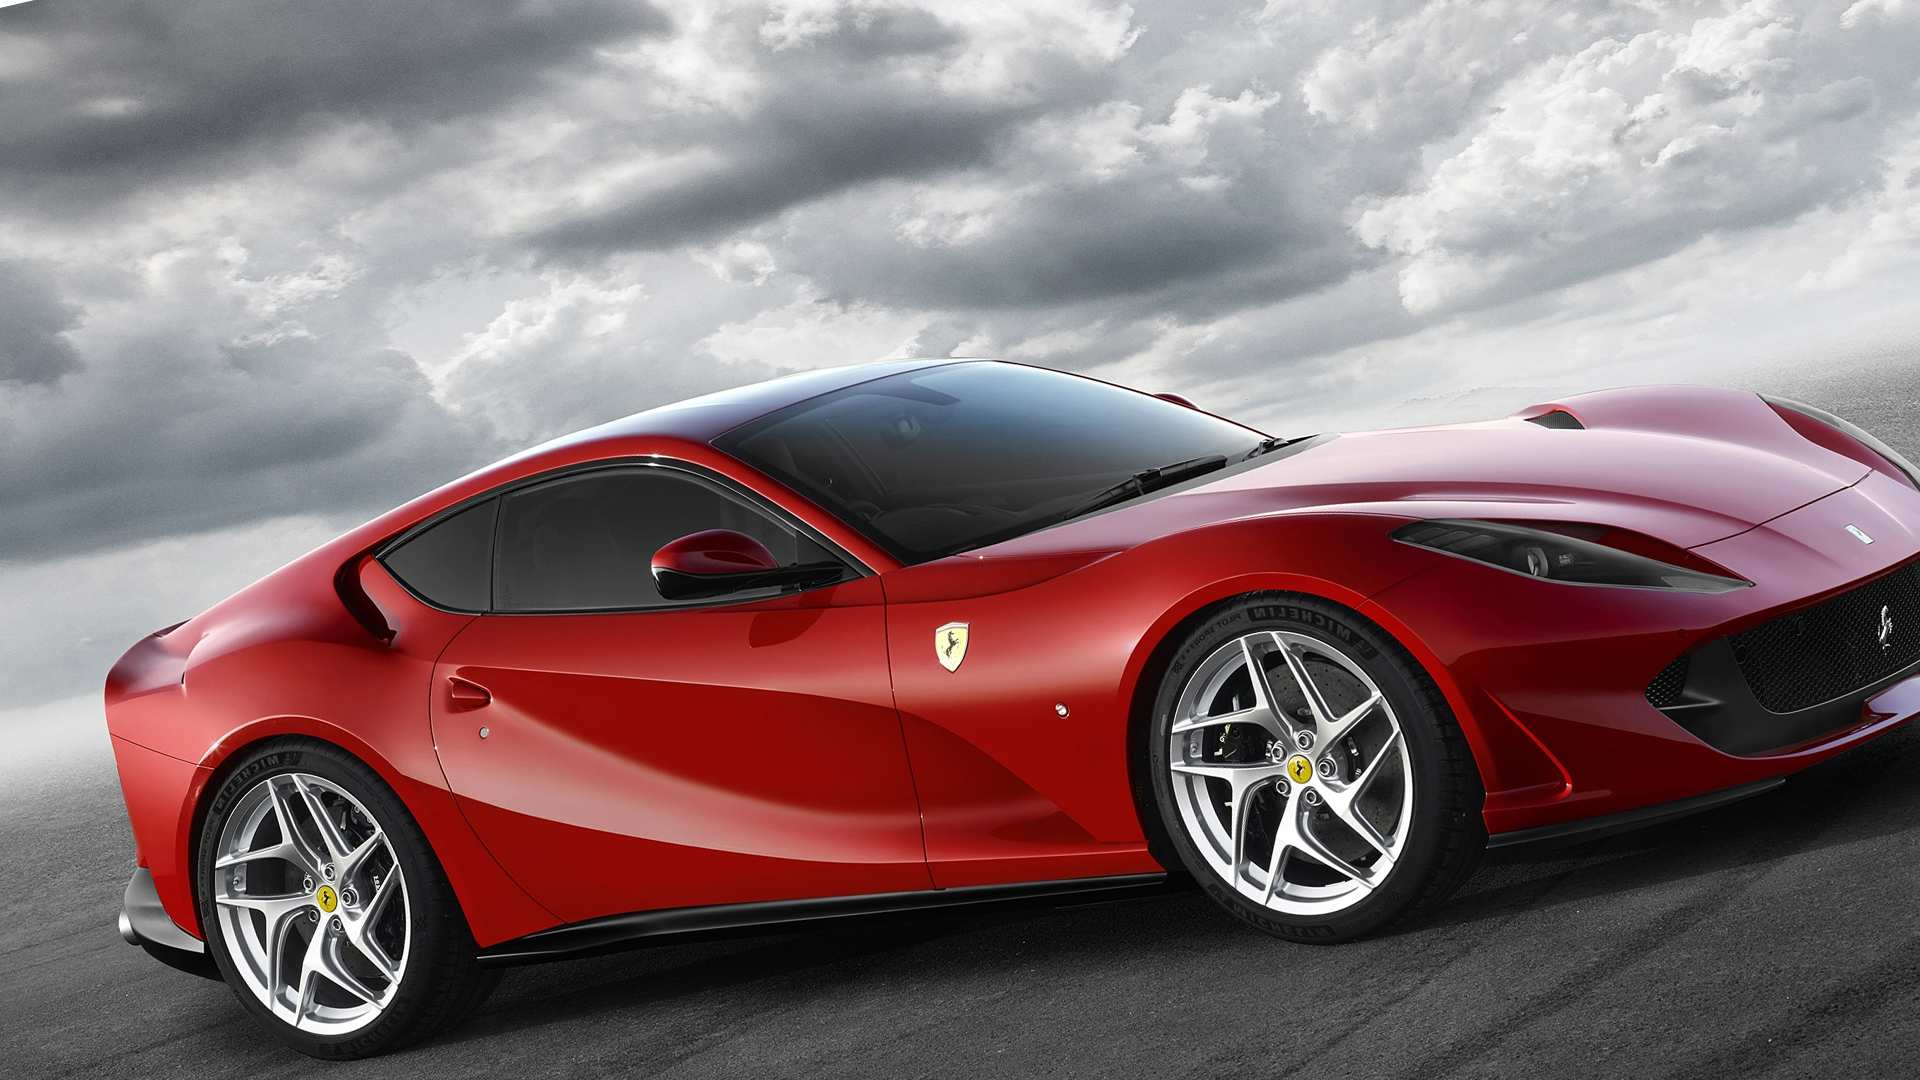 59 New 2019 Ferrari Hybrid Specs and Review by 2019 Ferrari Hybrid